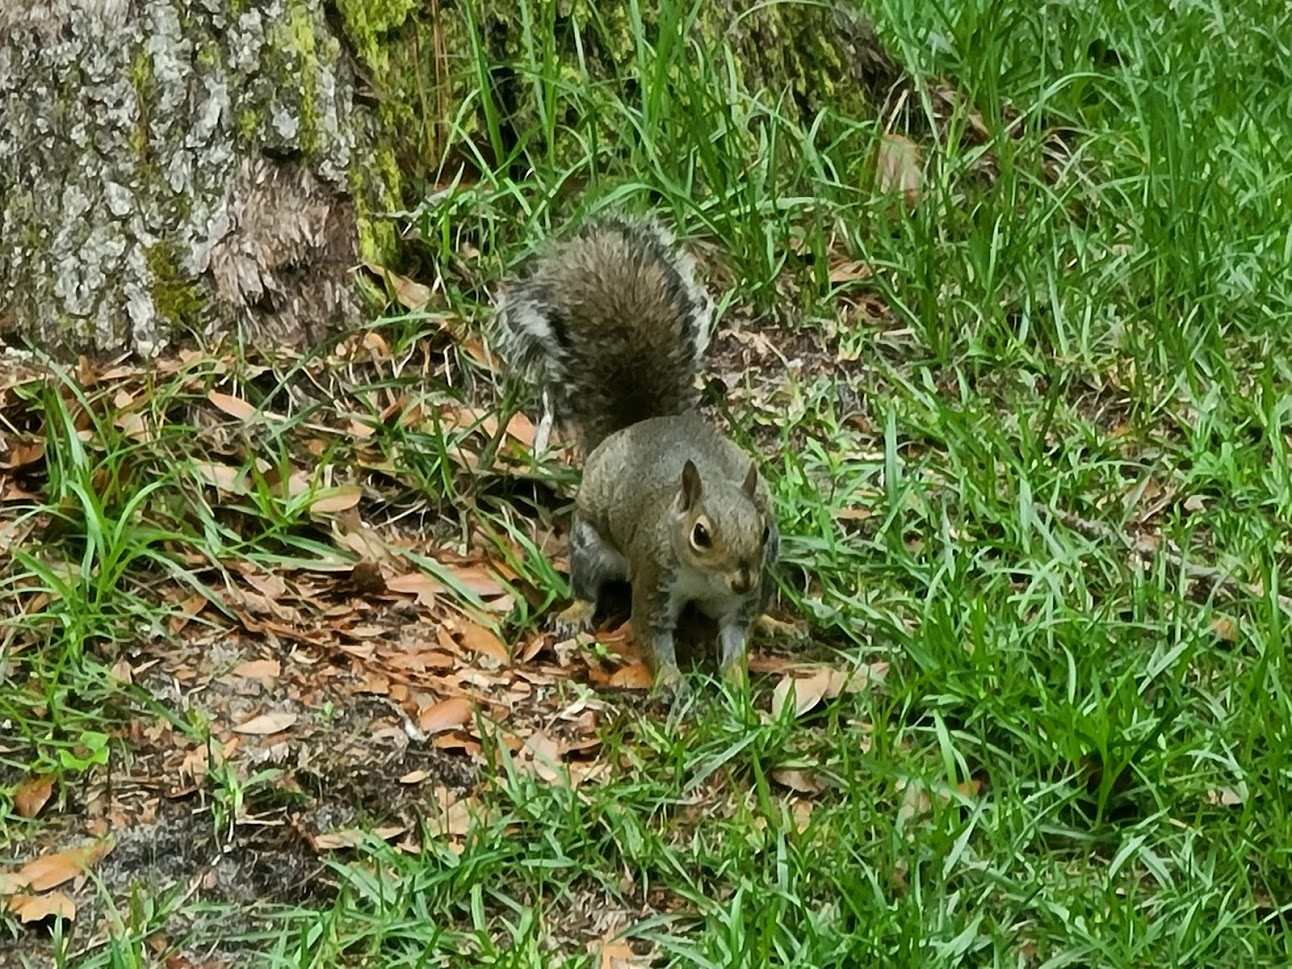 Squirrel - April 24, 2020 - 1